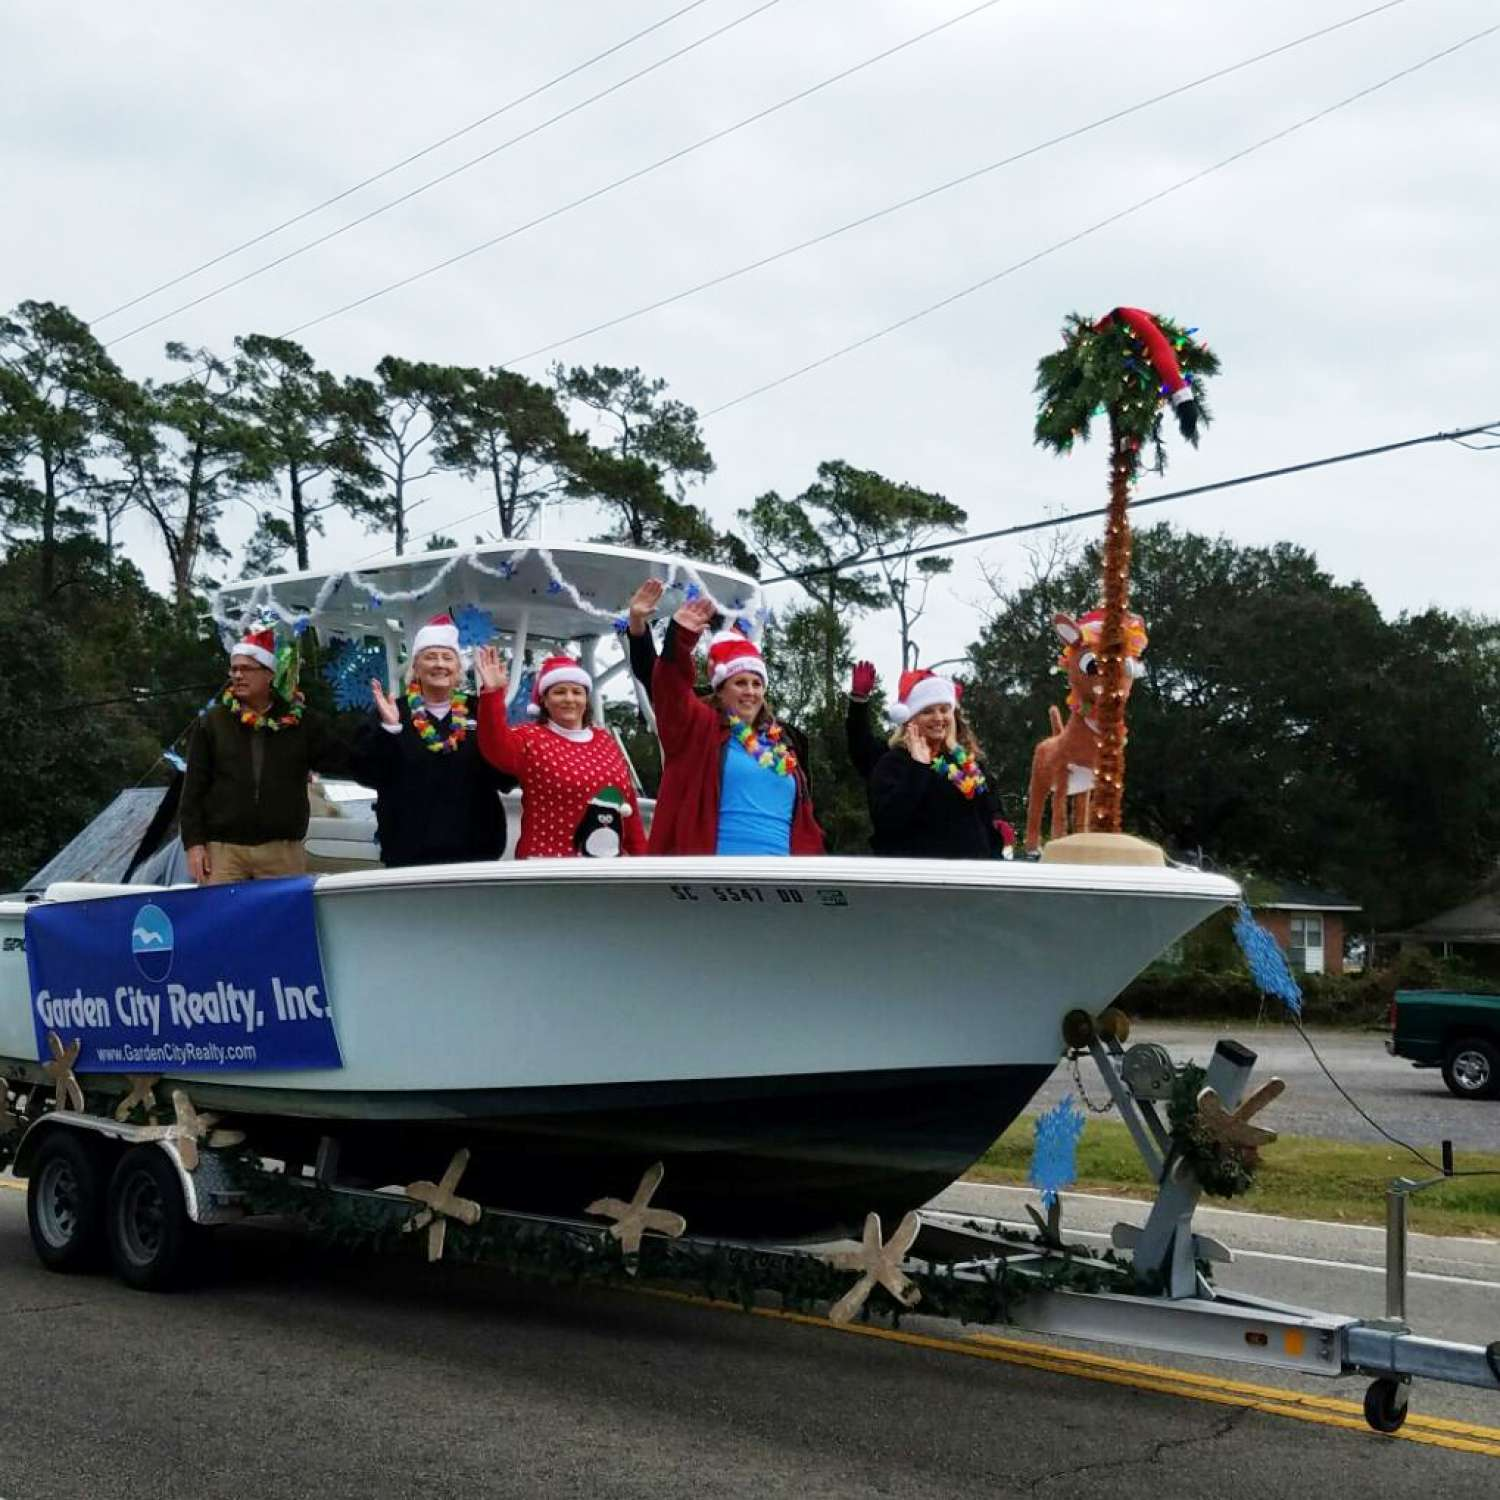 Title: Christmas Parading In Our Sportsman - On board their Sportsman Heritage 231 Center Console - Location: Garden City Beach, South Carolina. Participating in the Photo Contest #SportsmanDecember2016